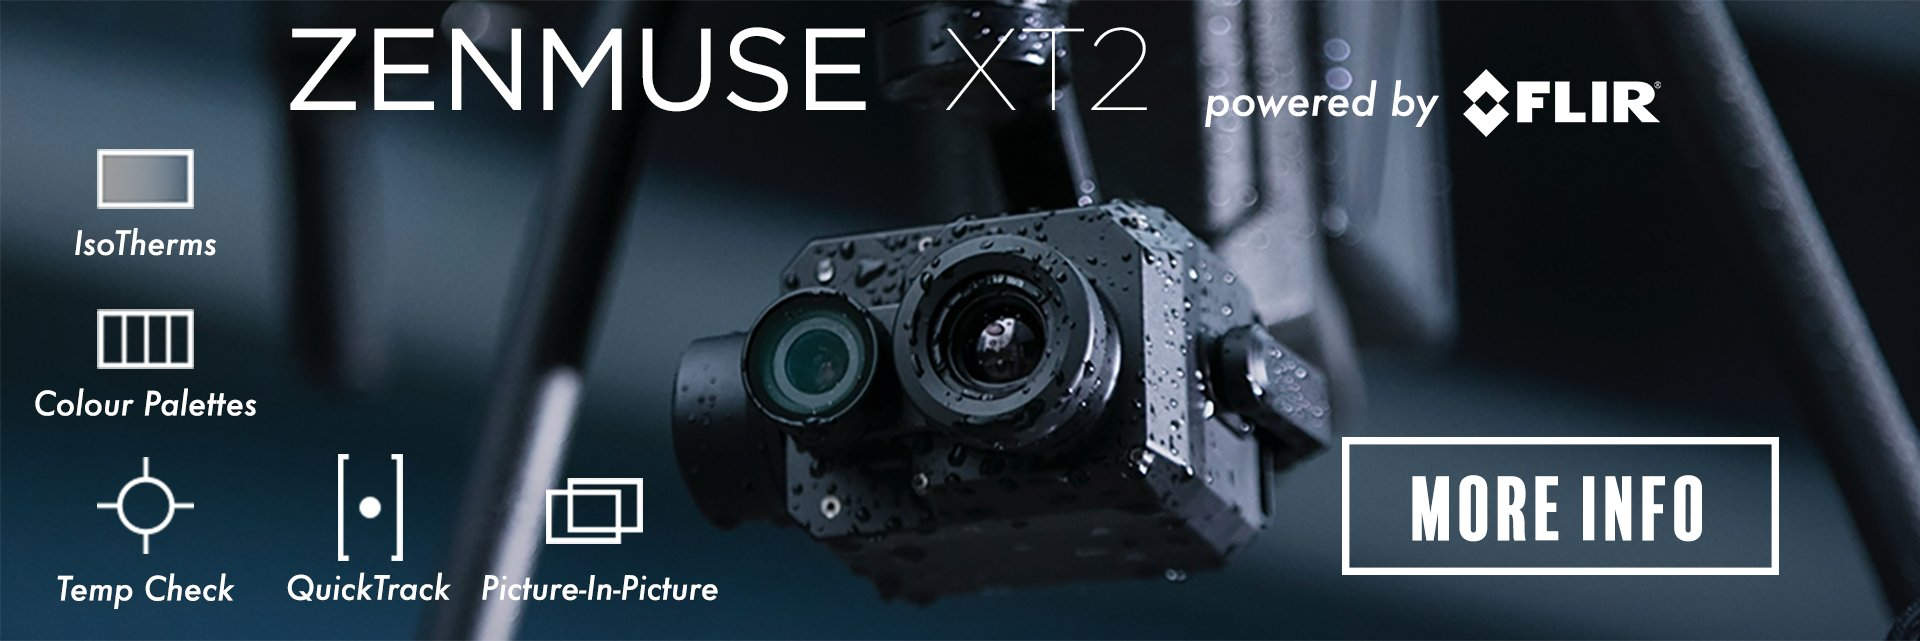 DJI Zenmuse XT2 powered by FLIR